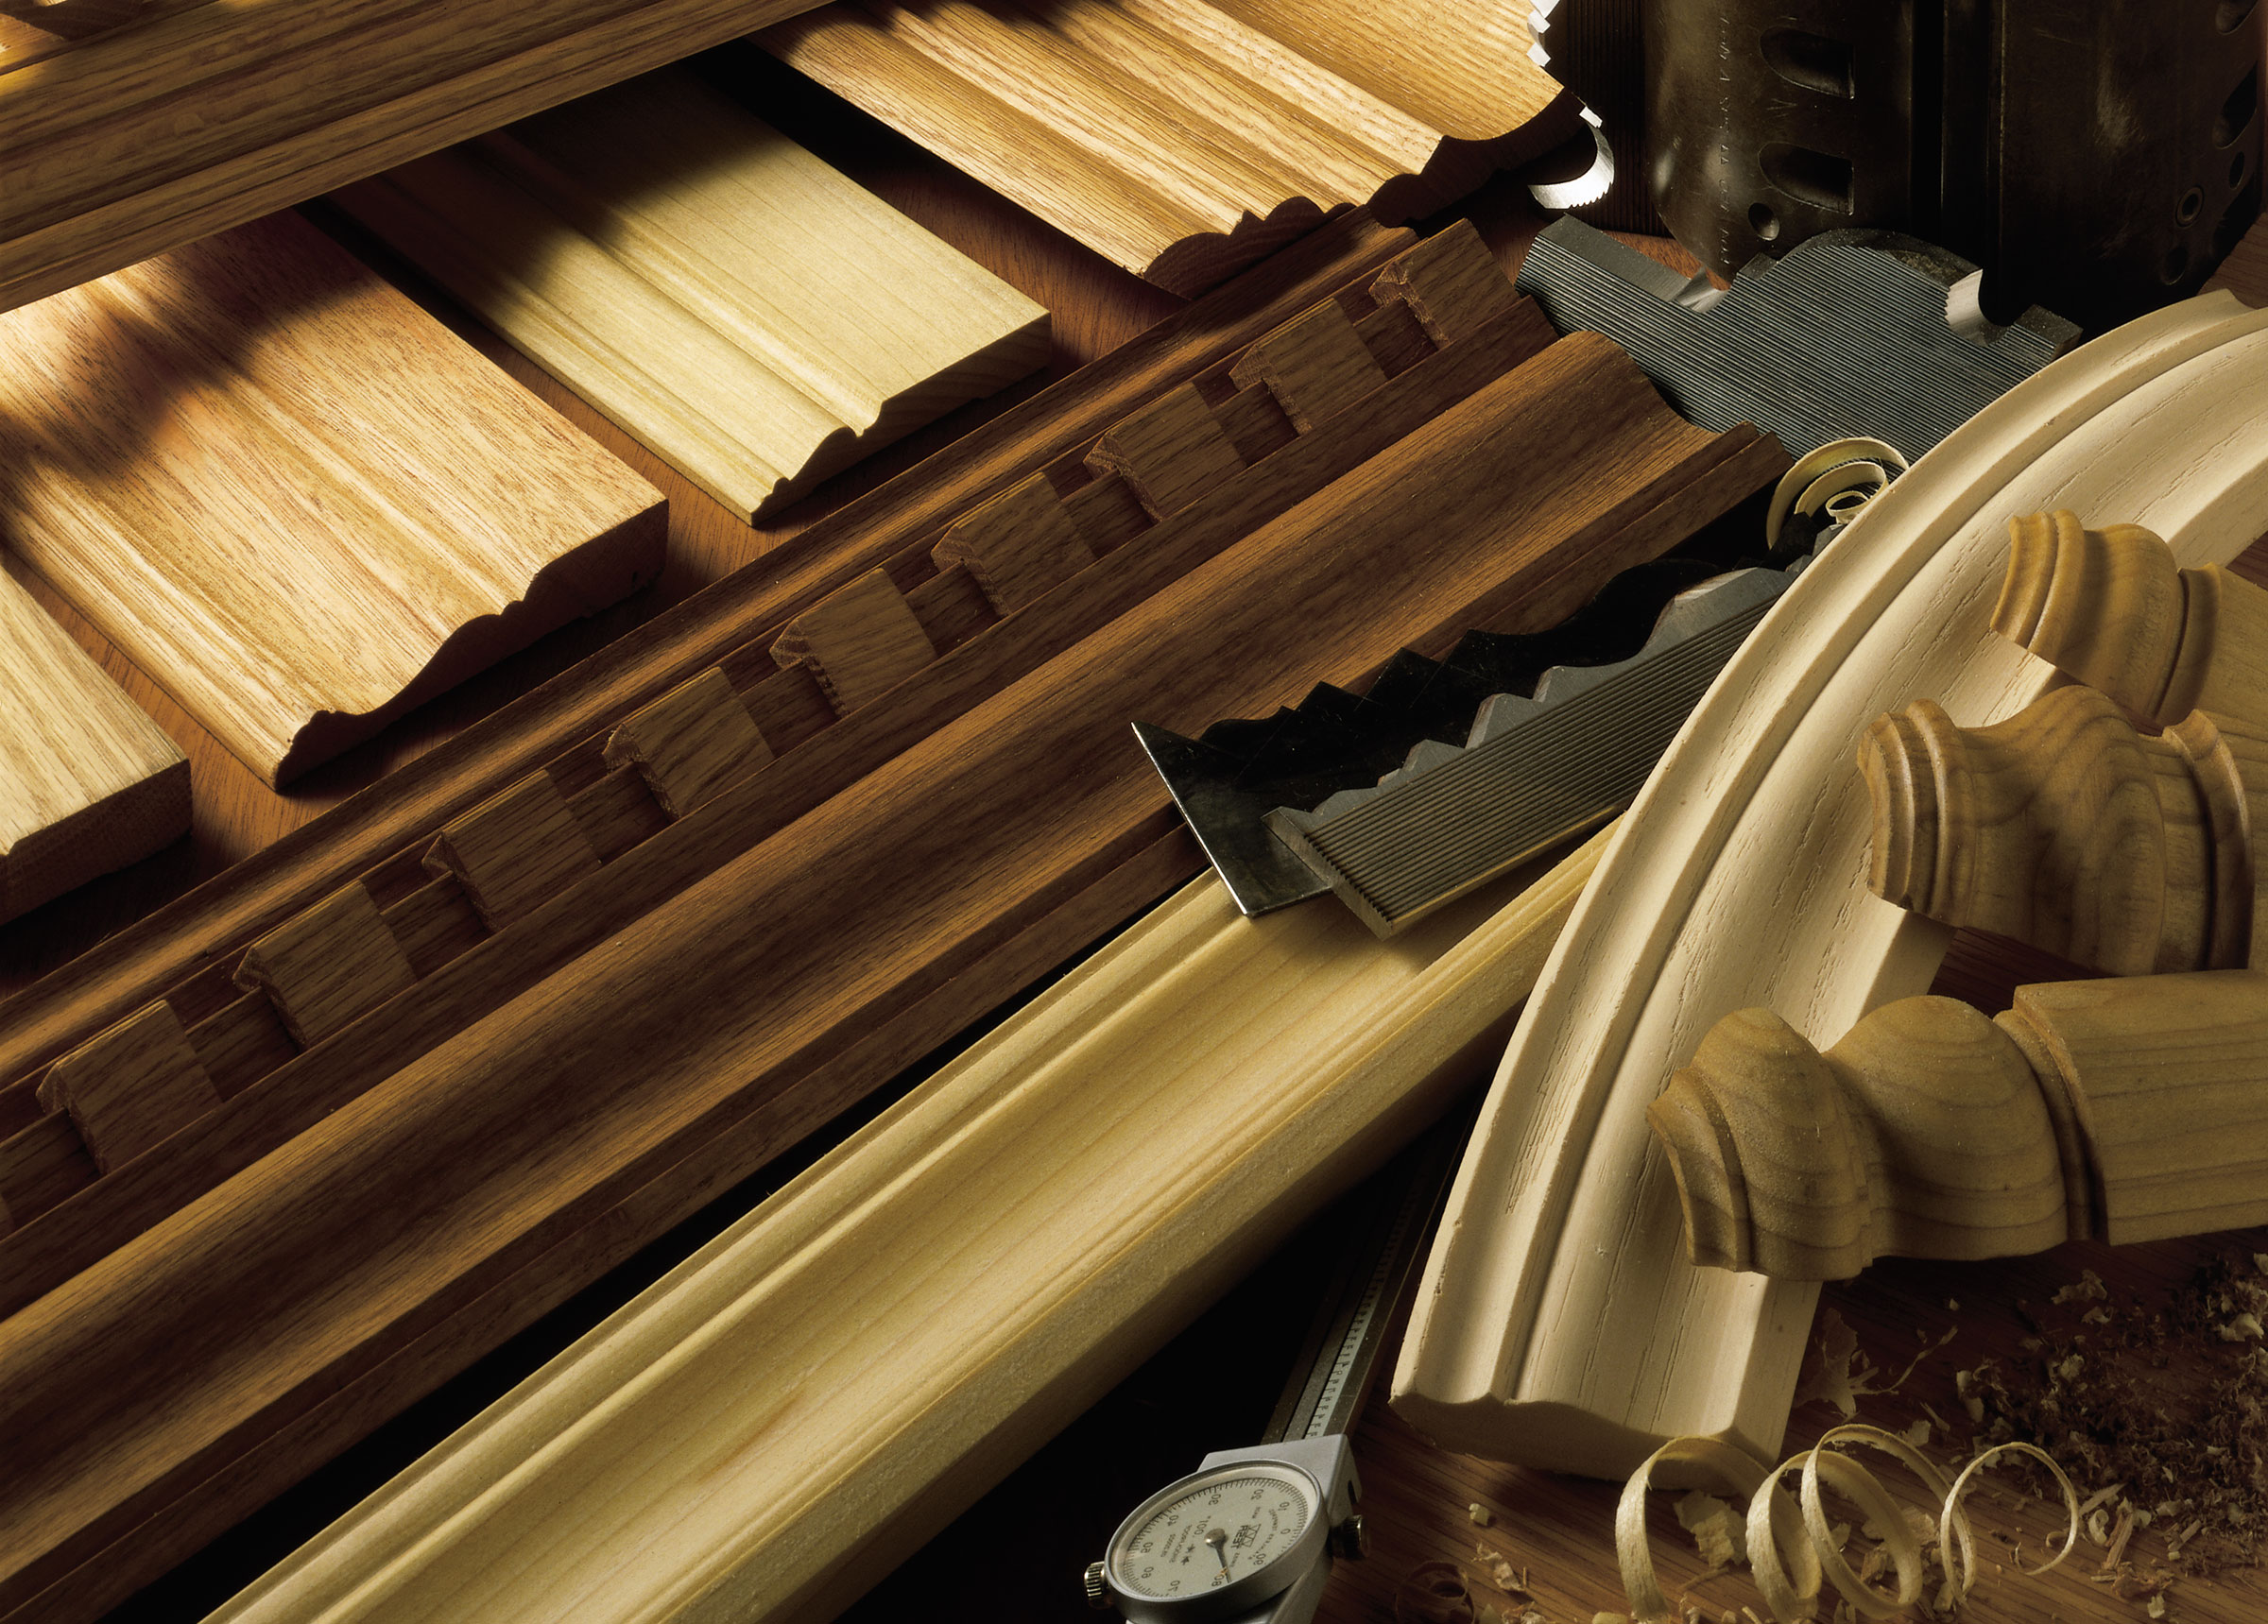 Hardwood Mouldings Saroyan Hardwoods